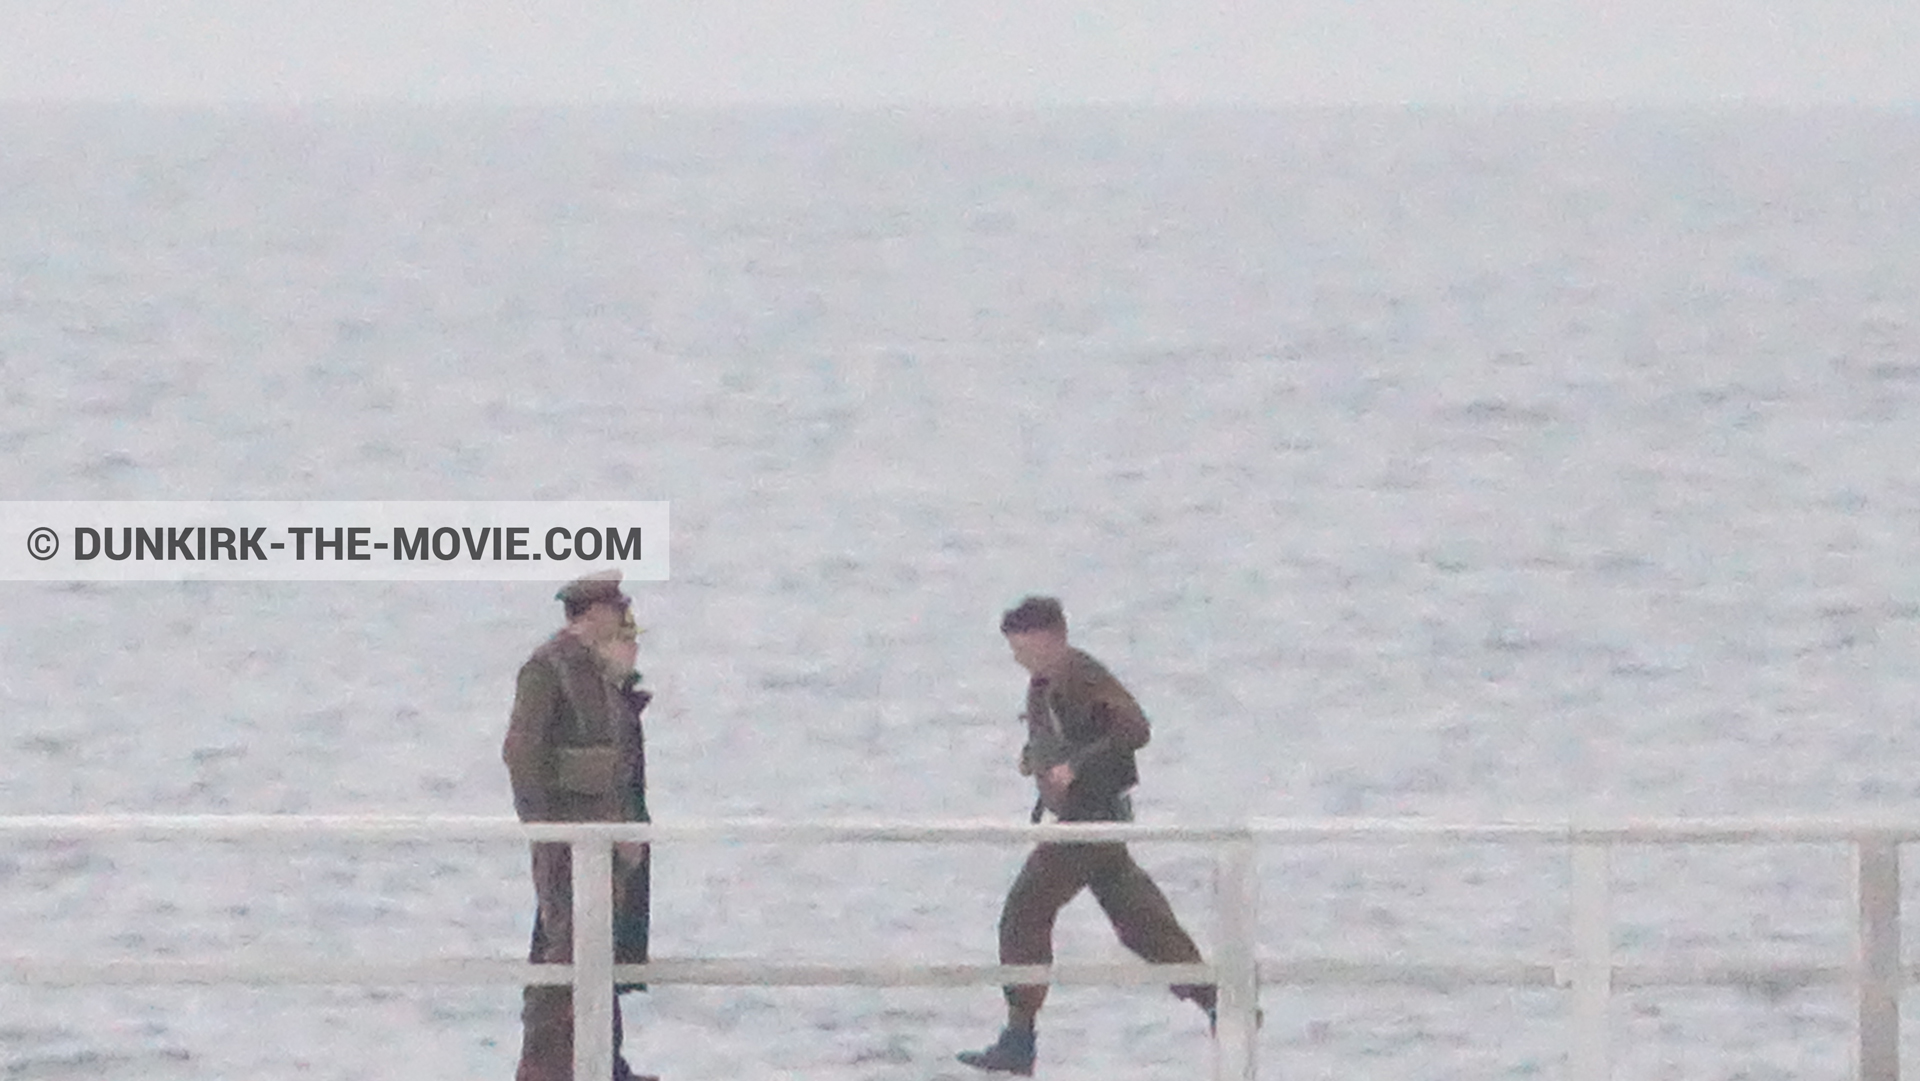 Picture with actor, EST pier,  from behind the scene of the Dunkirk movie by Nolan